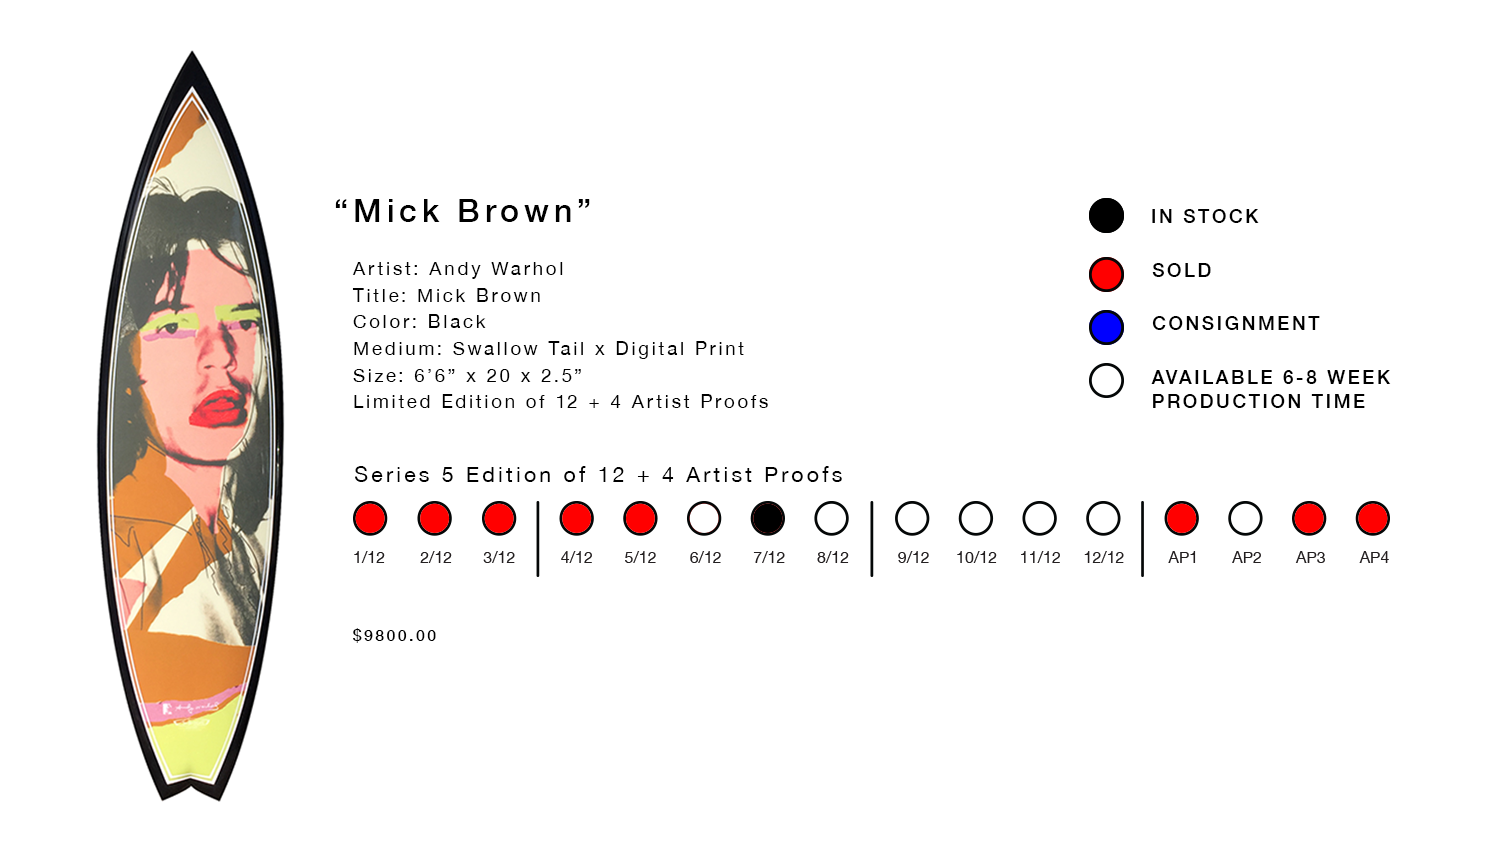 MICKBROWN_AVAIL.png